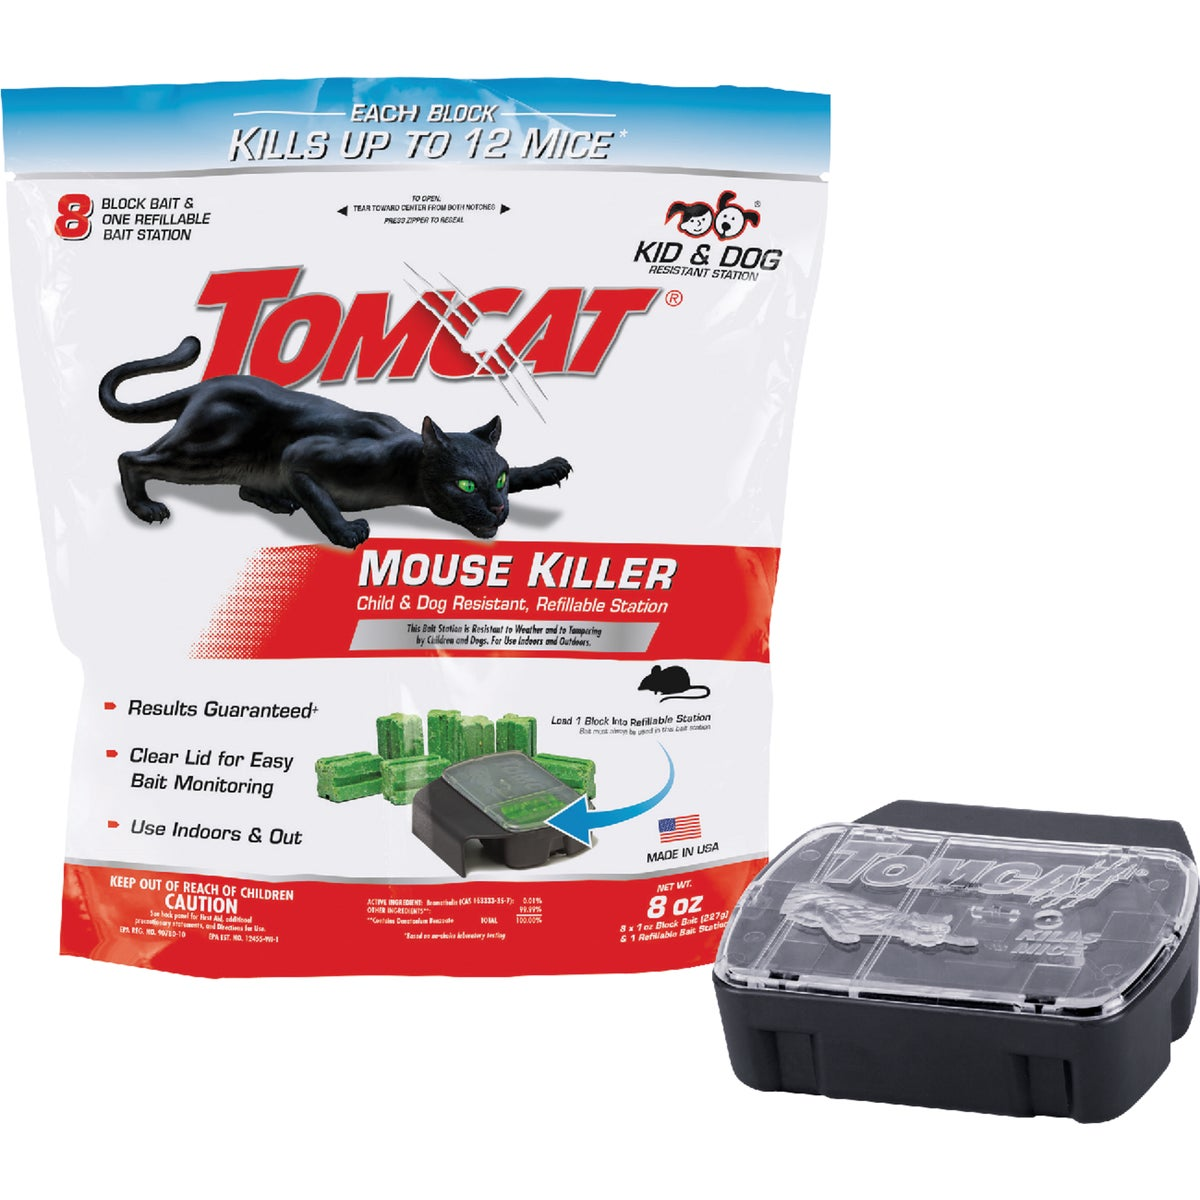 MOUSE BAIT STATION 8 REF - BL22478 by Motomco Ltd